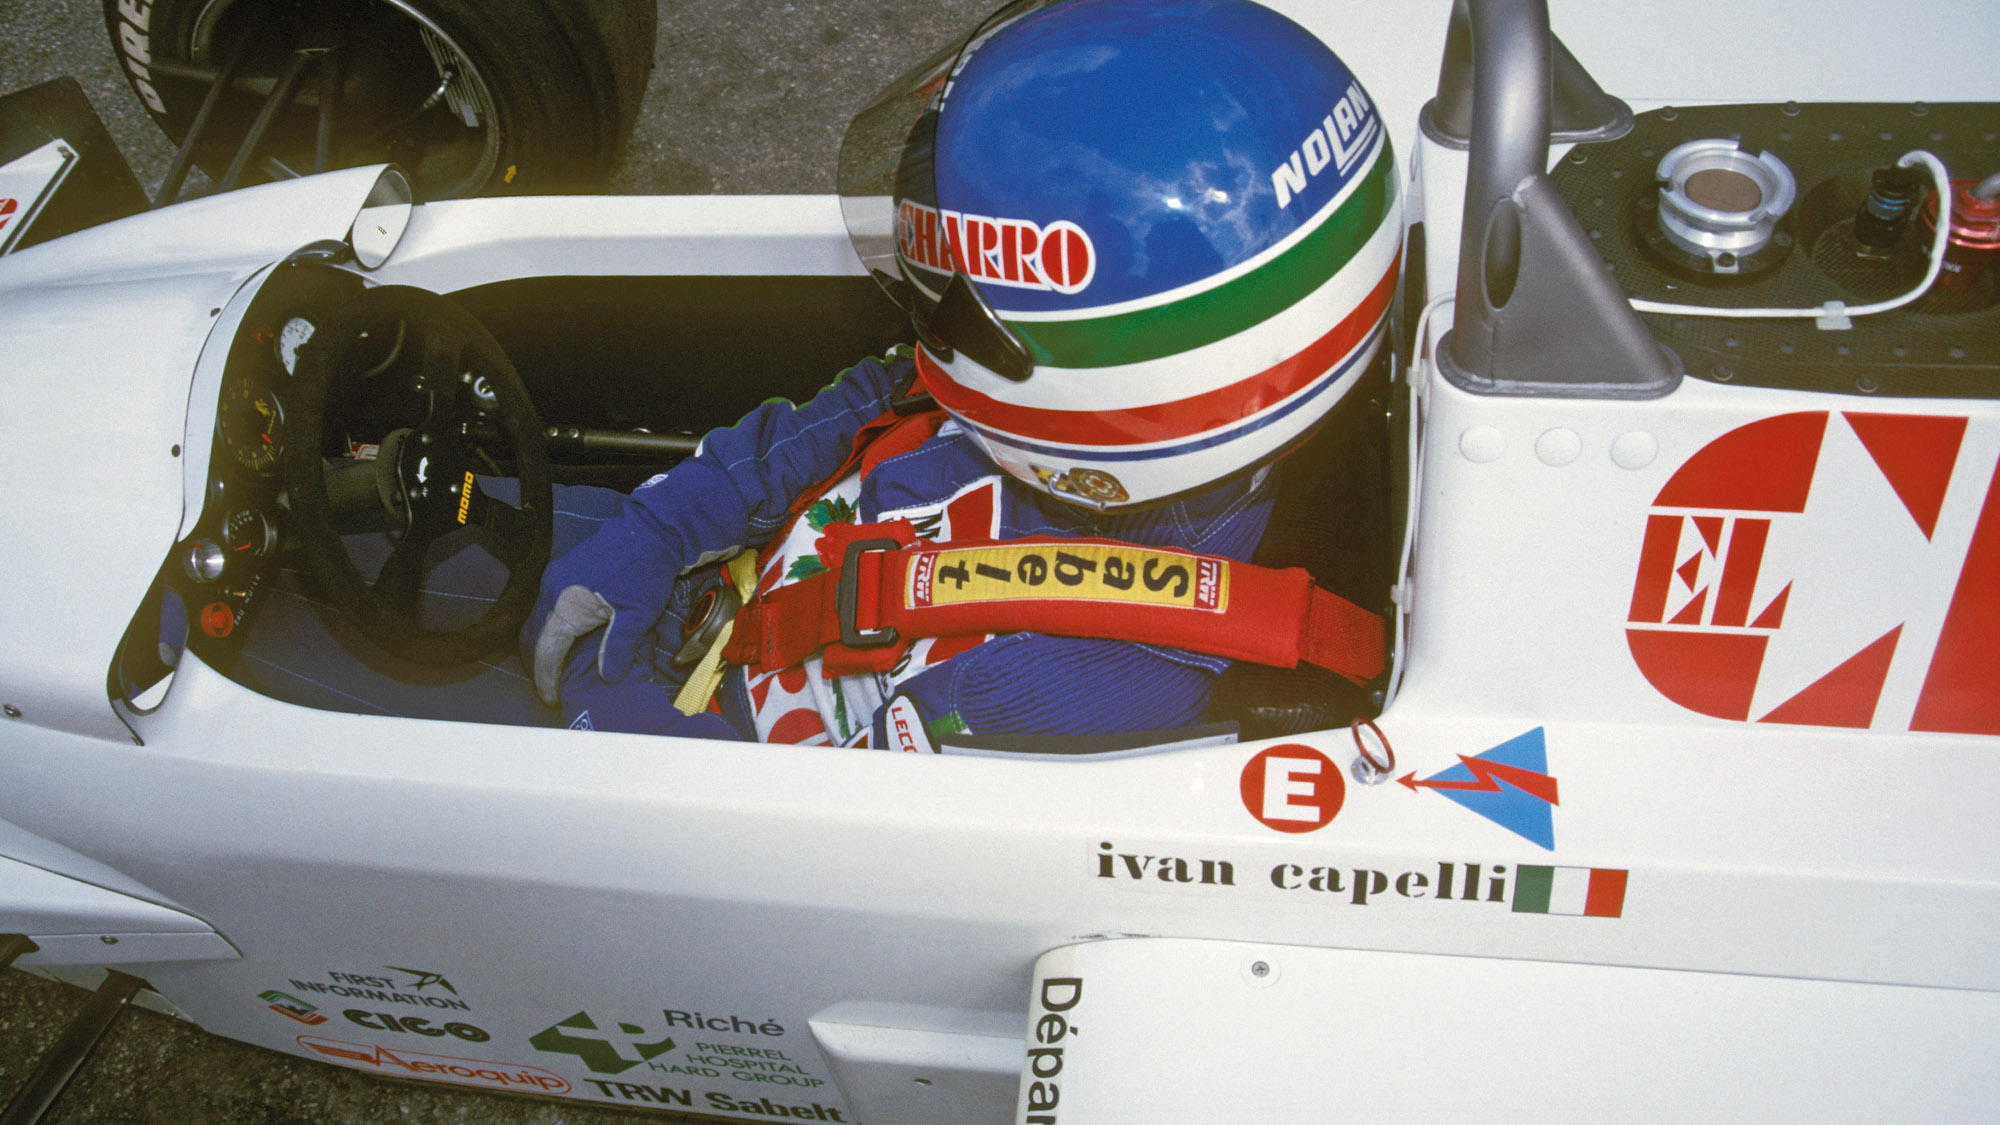 Ivan Capelli in the 1986 AGS JH21C